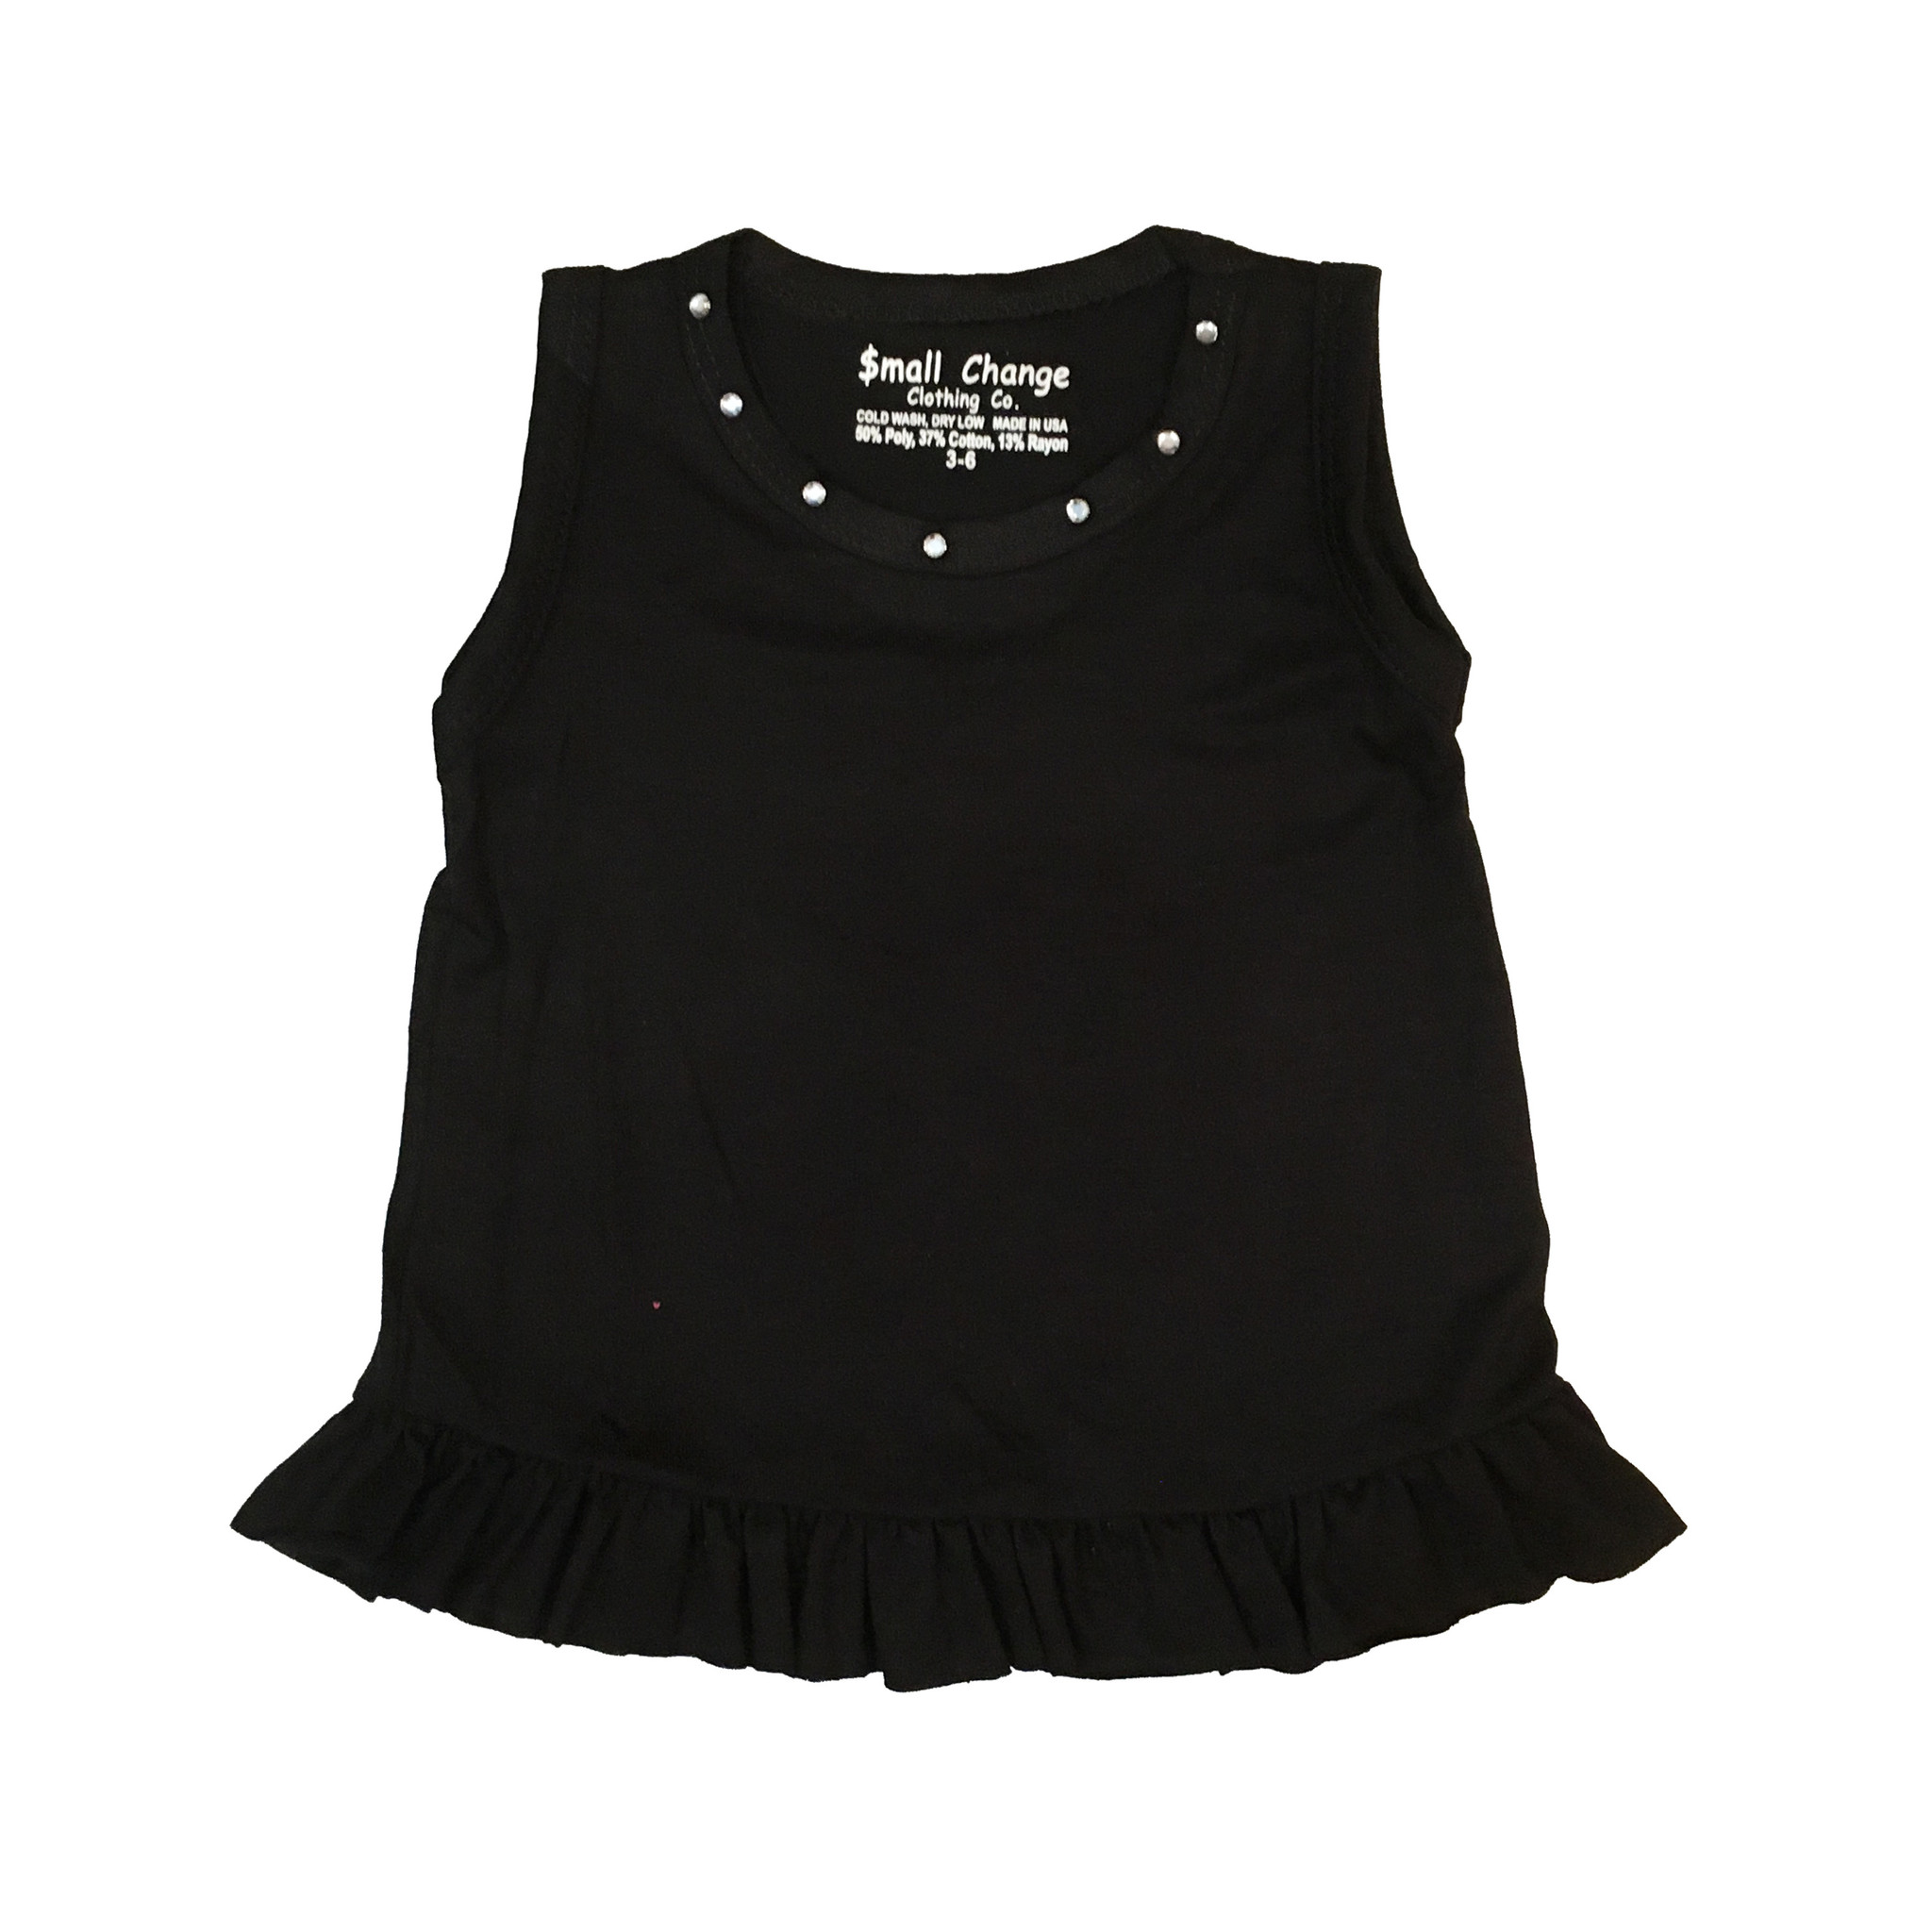 Small Change Black Ruffle Rhinestone Tank